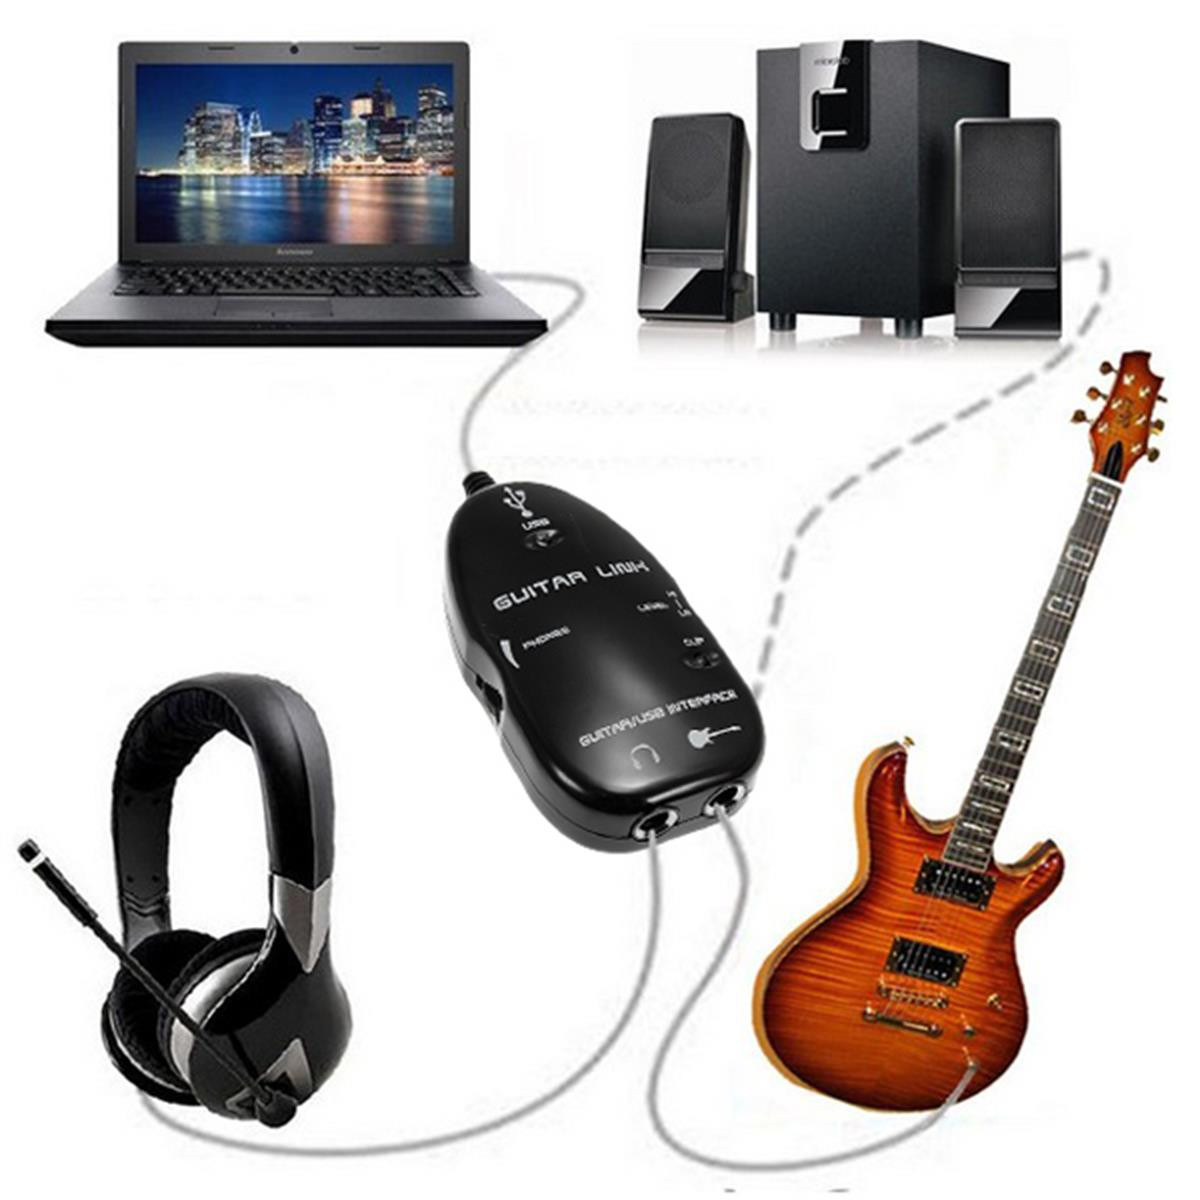 usb guitar to laptop pc mac interface audio link cable lead playback recording audew lazada ph. Black Bedroom Furniture Sets. Home Design Ideas